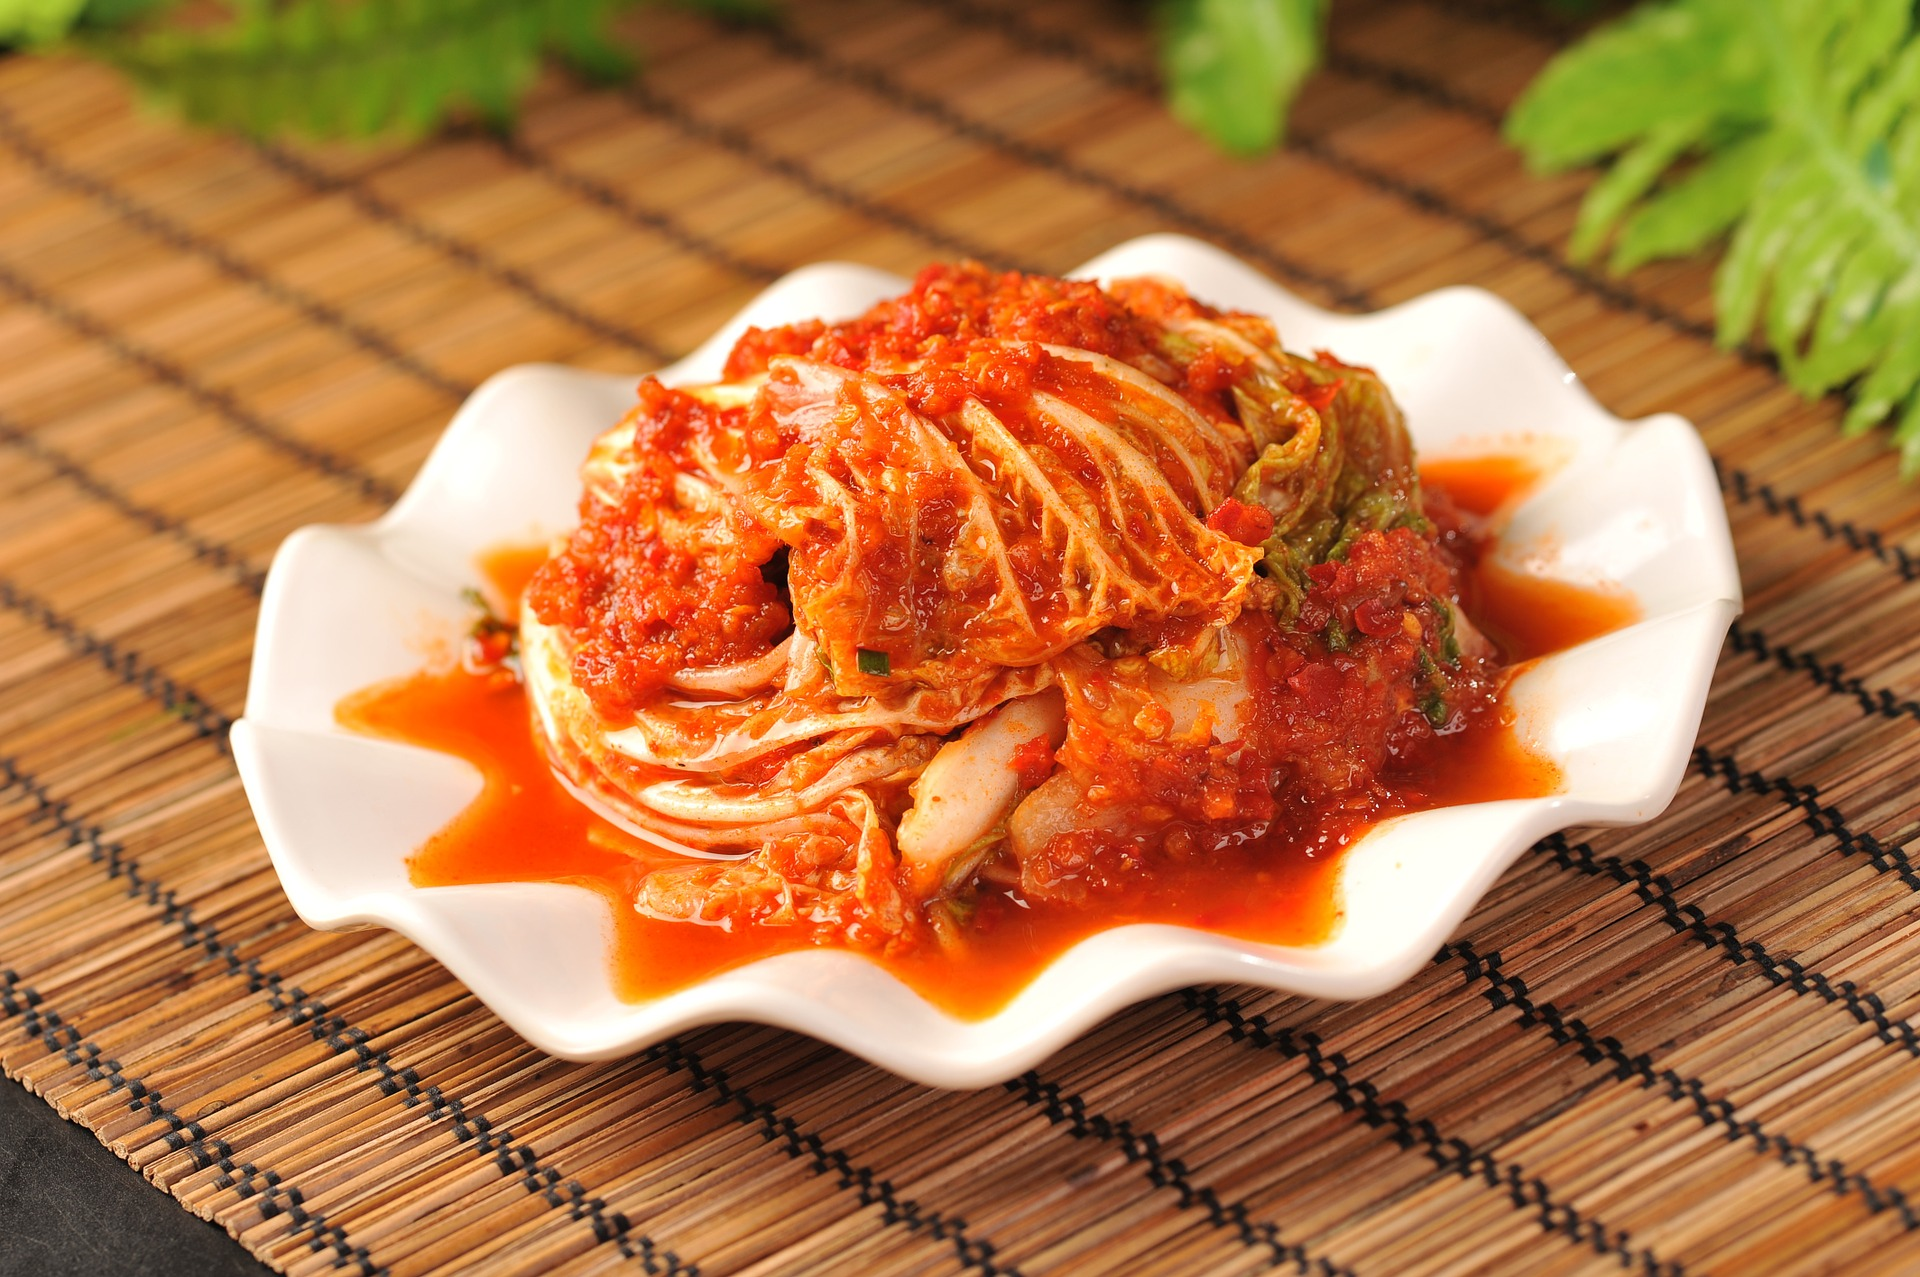 Mustard cabbage prepared in chili sauce.